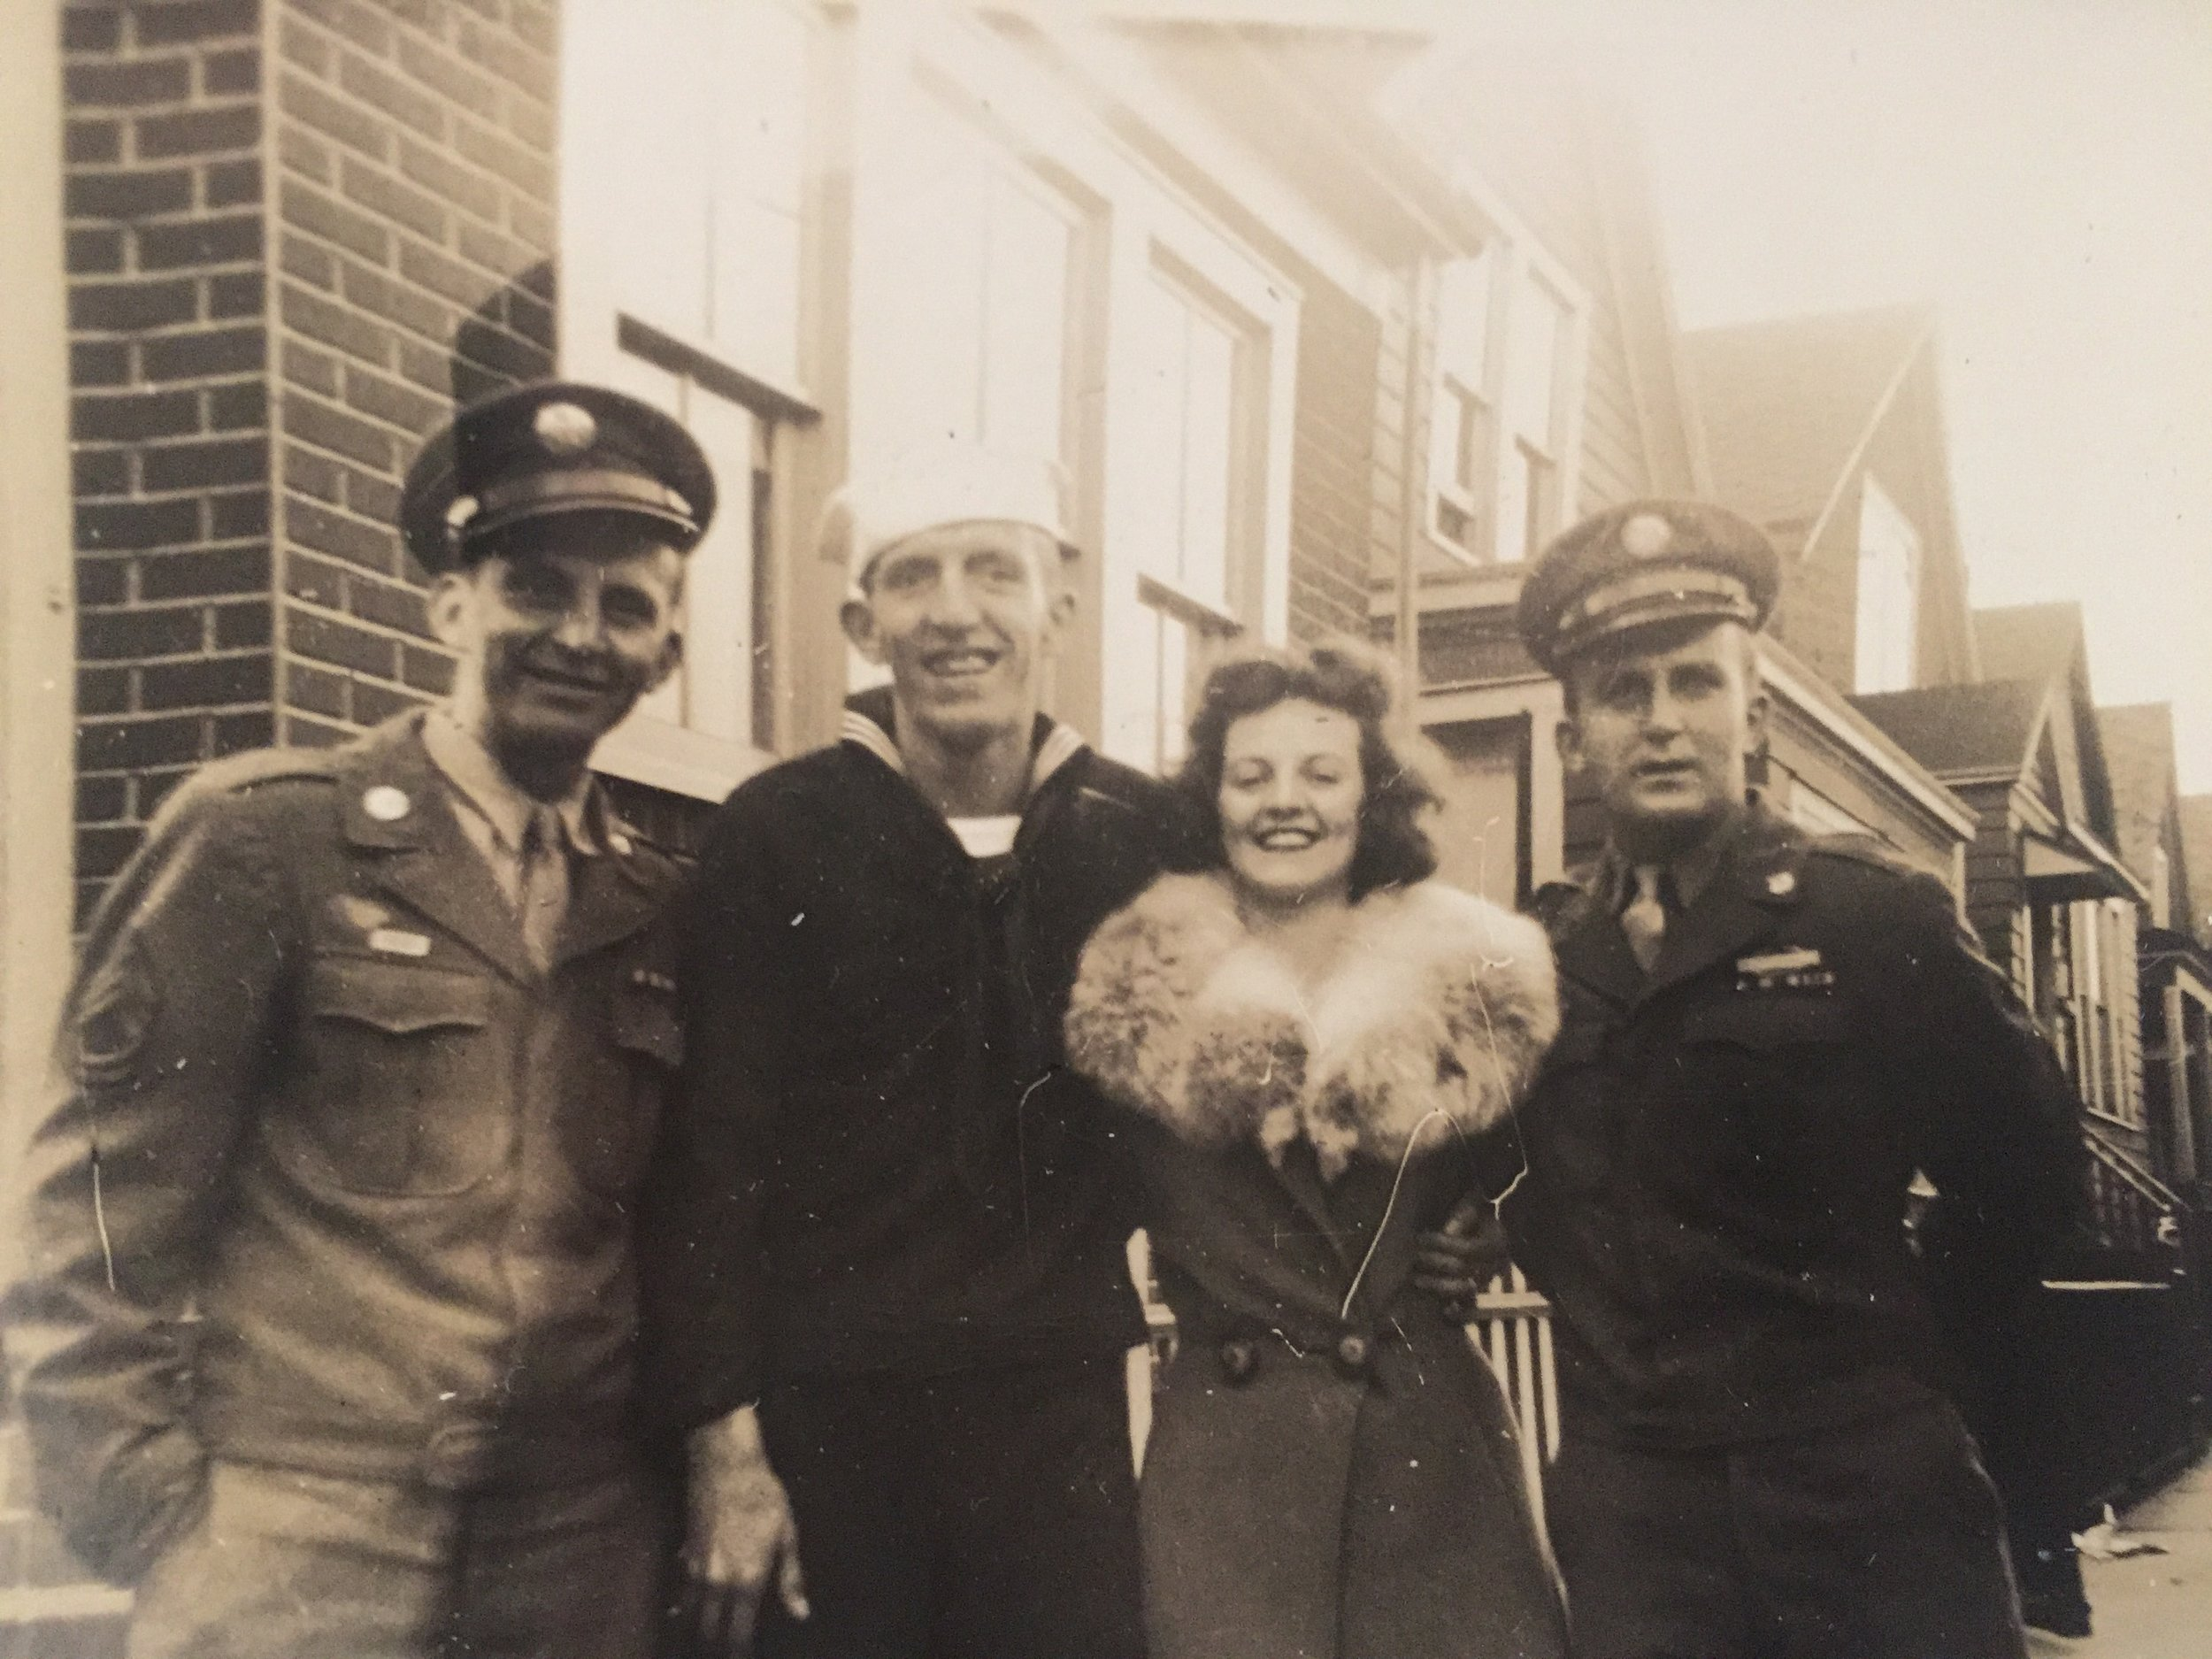 Anne with three of her brothers late 1940s.